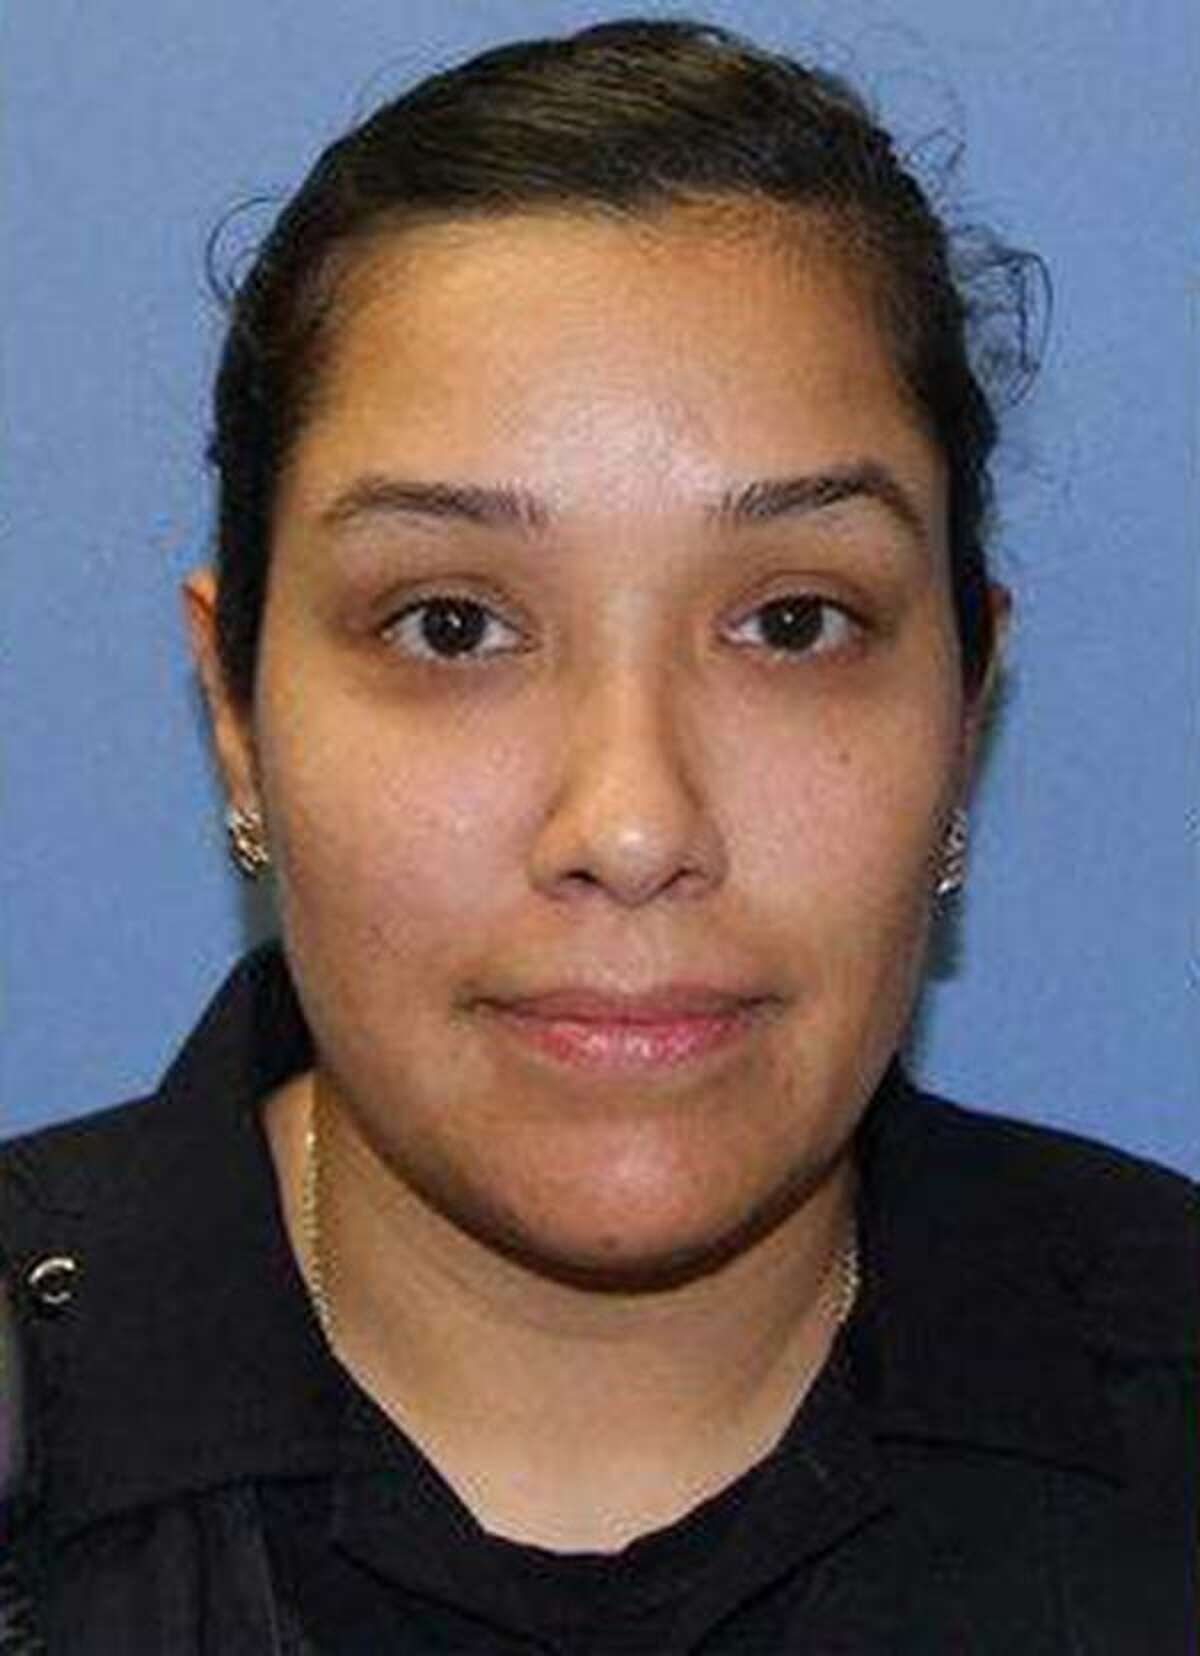 San Antonio police officer Elizabeth Montoya was accused of striking a woman who was six-months pregnant and was fired. She is appealing to try to get her job back. In the meantime, she was hired as a reserve officer by Leon Valley Police Chief Joe Salvaggio.